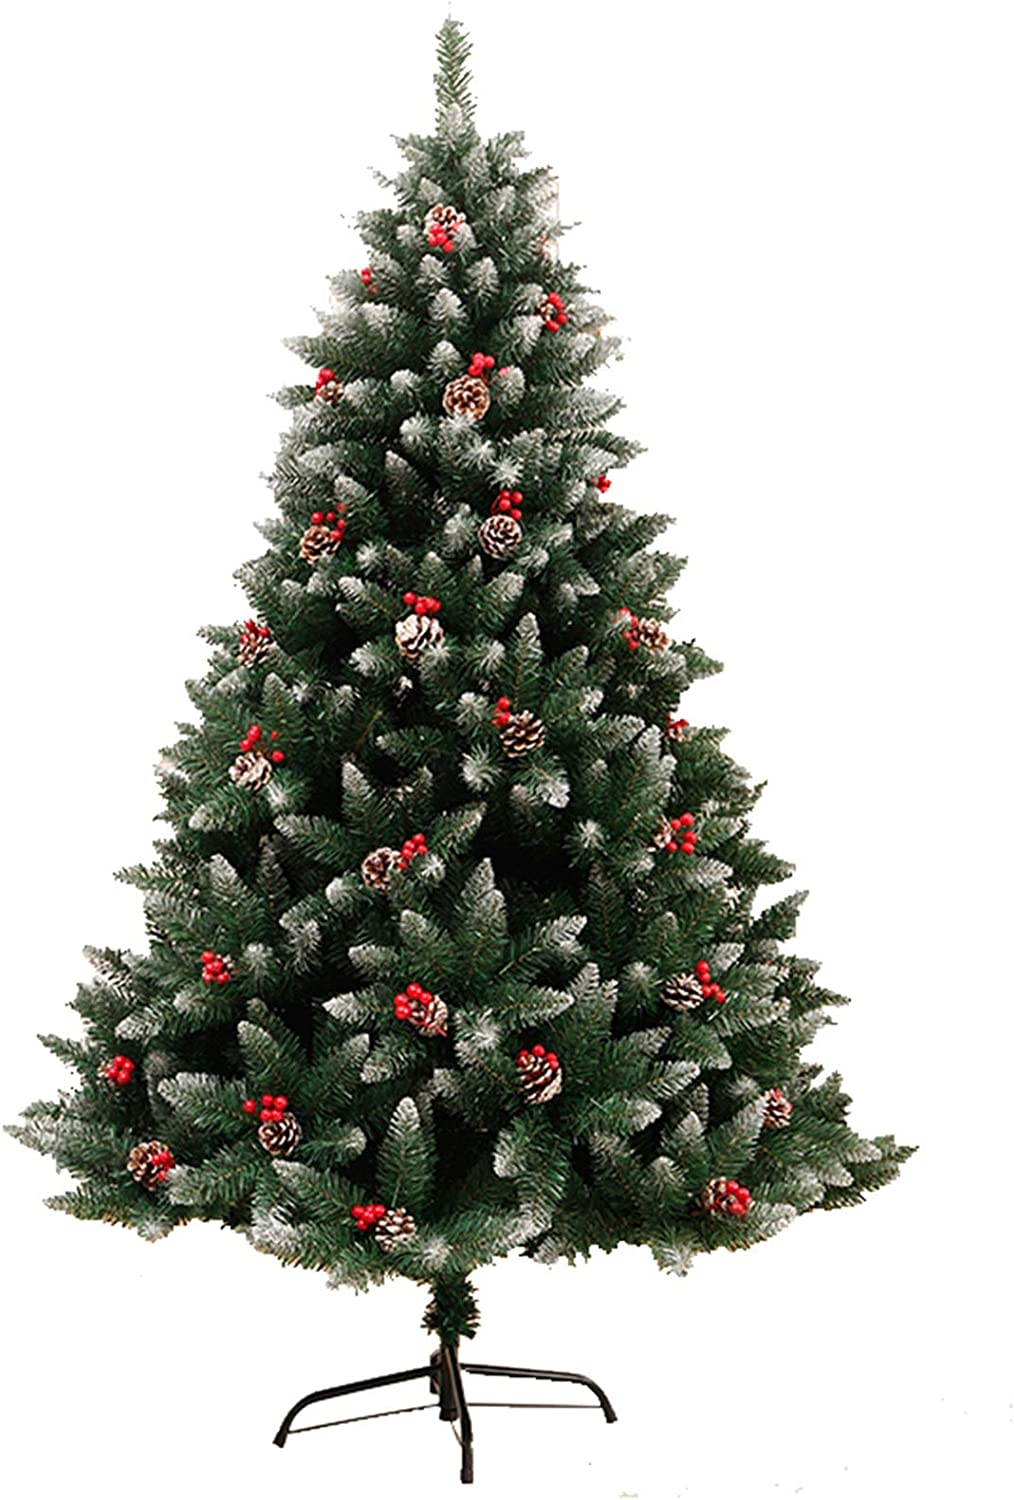 WKK-PB Christmas Tree All Max 47% OFF items free shipping PVC Outdoor Indoor Material and